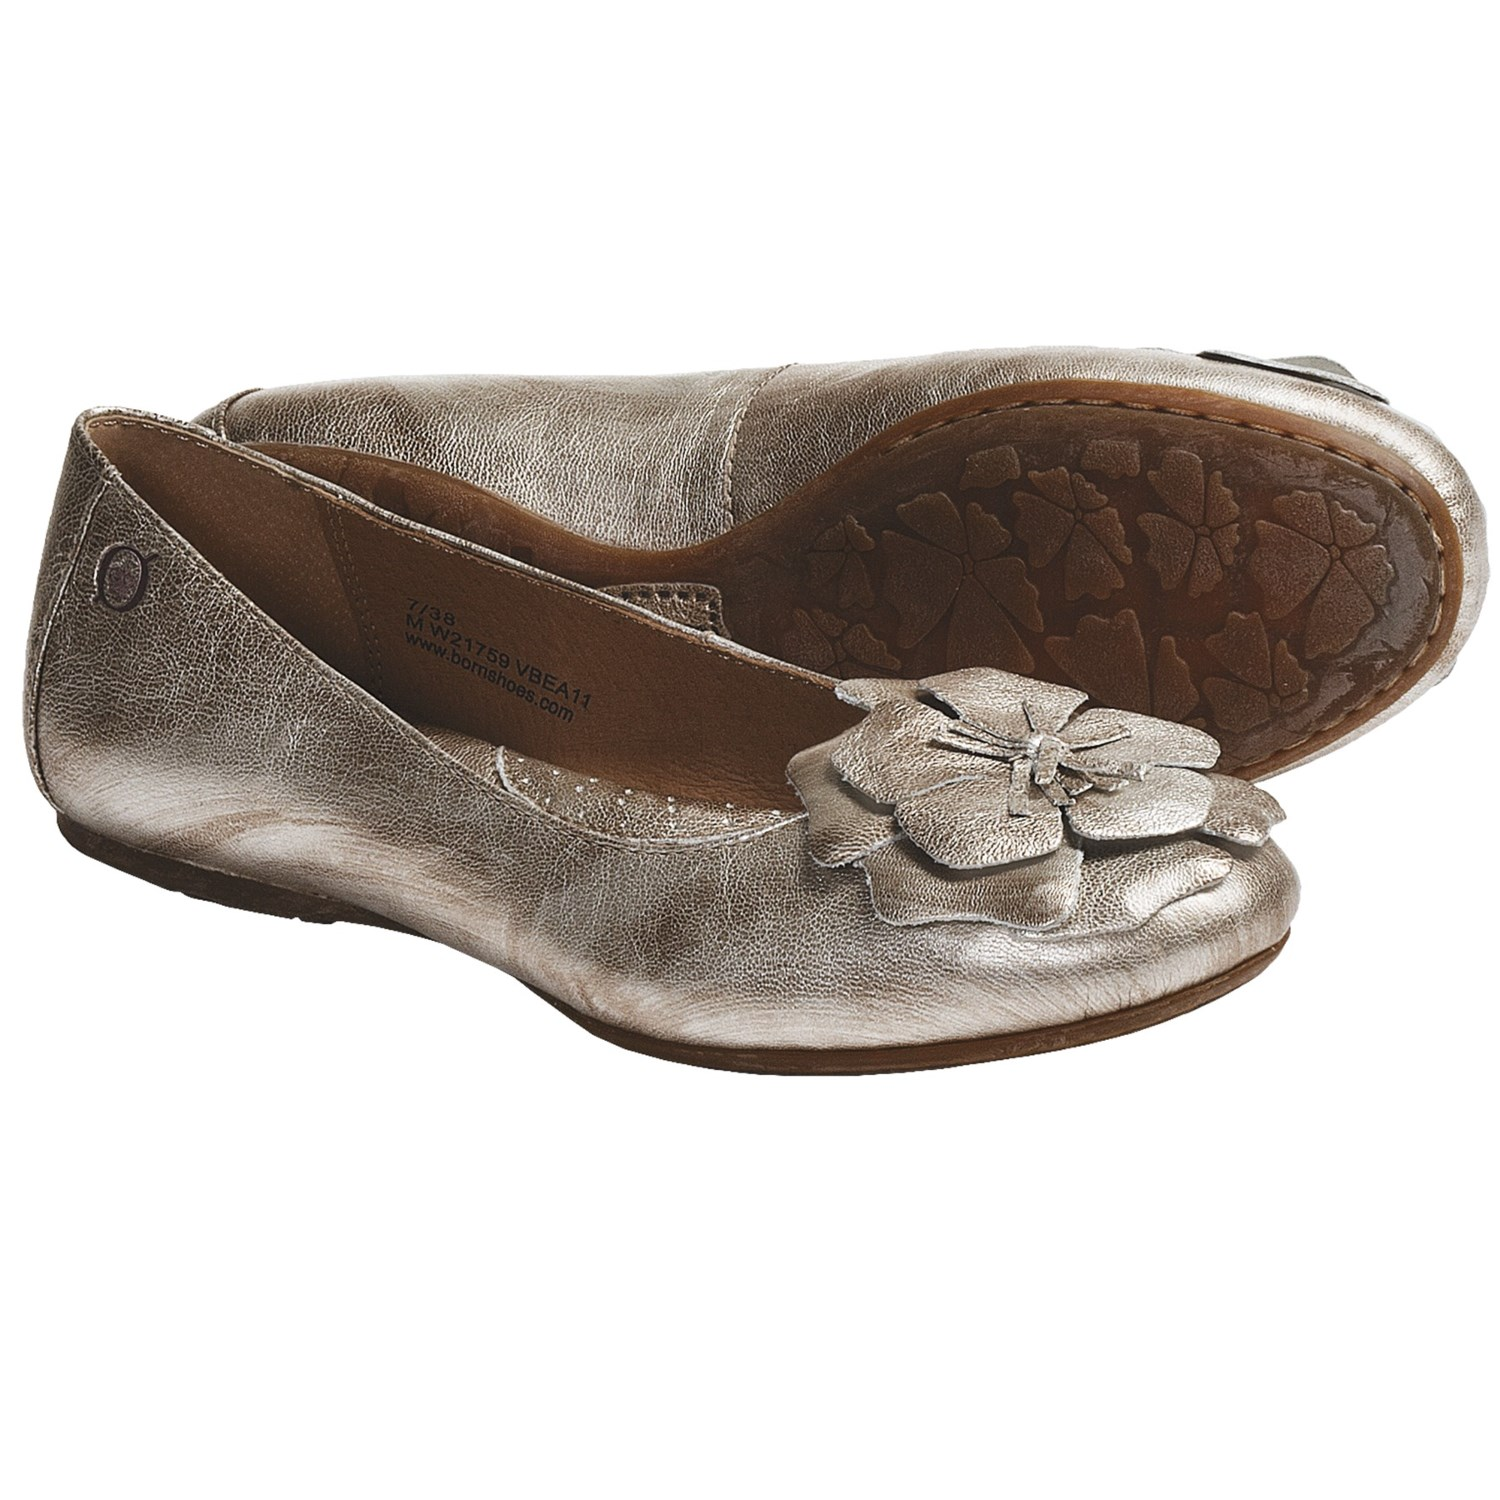 Leather Ballet Flats That Will Renew The Feet After A Day In These Painful Heels!